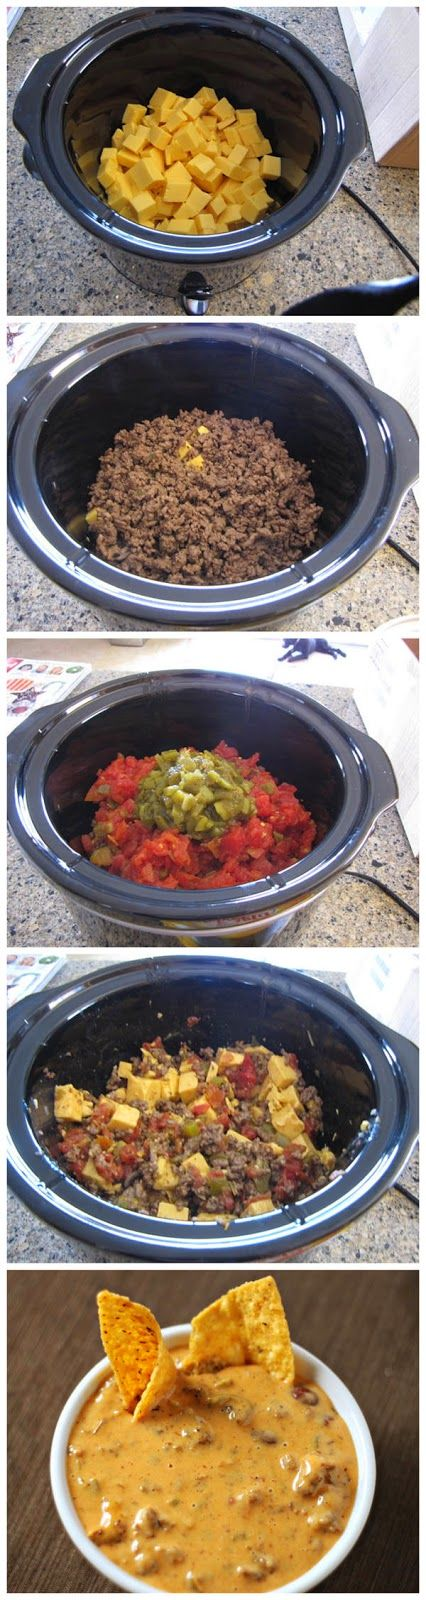 Tailgate Queso -- the recipe in this link is confused (photos and ingredients list for one dip with story and step-by-step directions for another), but here's what I'll do: 1lb spicy sausage (browned and drained), 1 lb Velveeta, 8 oz cream cheese, 2 cans Rotel, 1/2-1 jar jalapeños (roughly chopped) in crock pot.